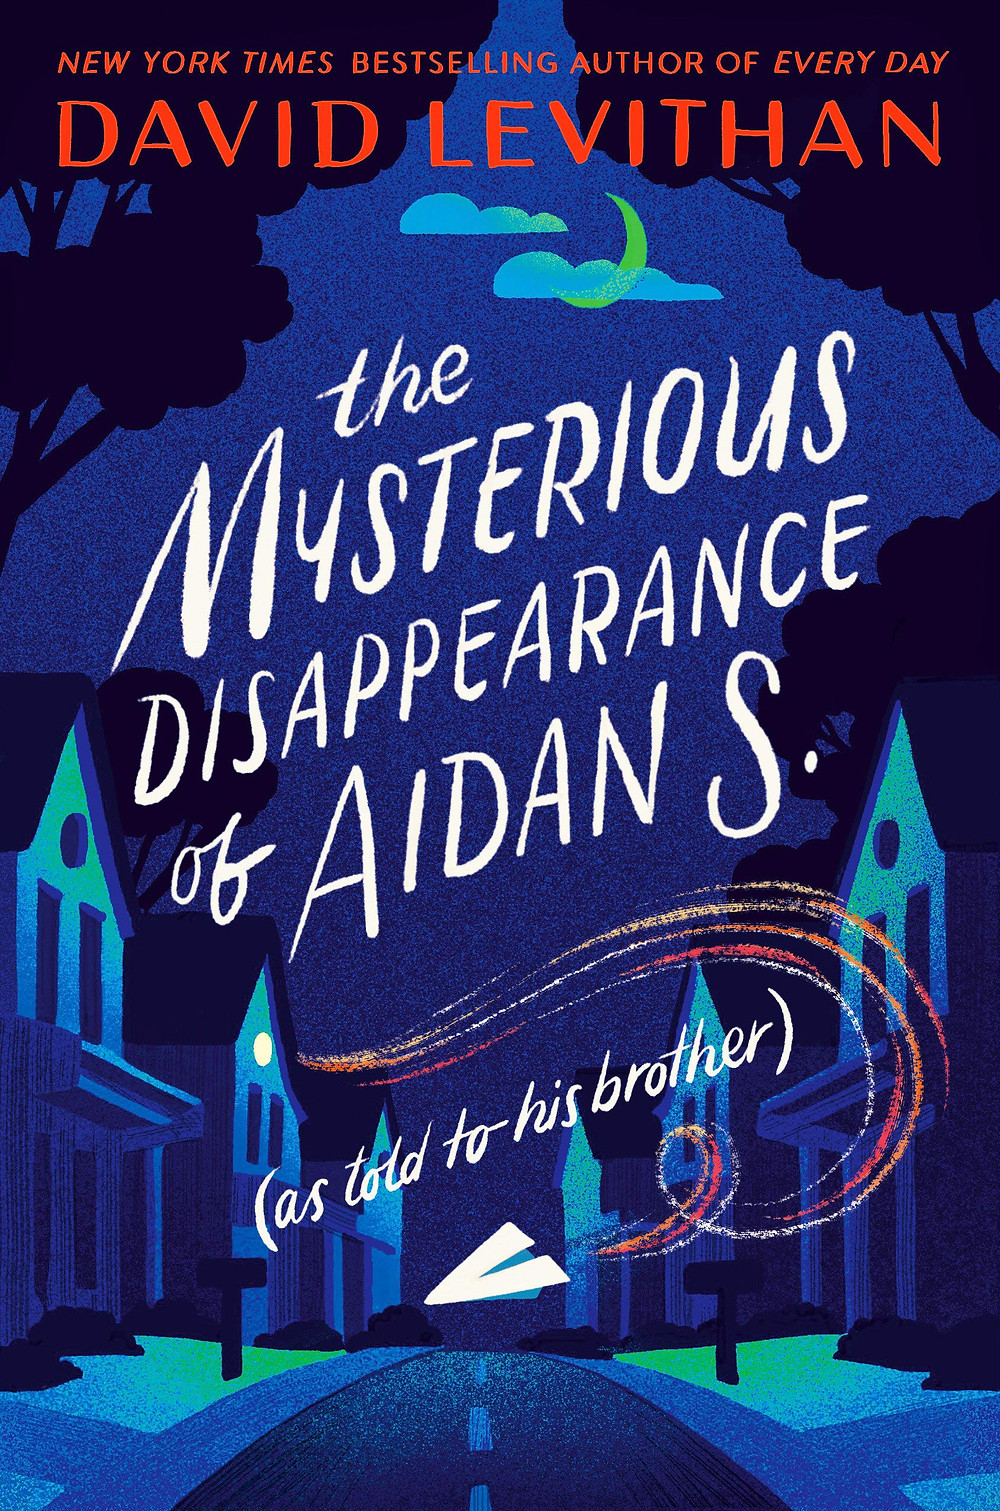 The Mysterious Disappearance of Aidan S. David Levithan cover